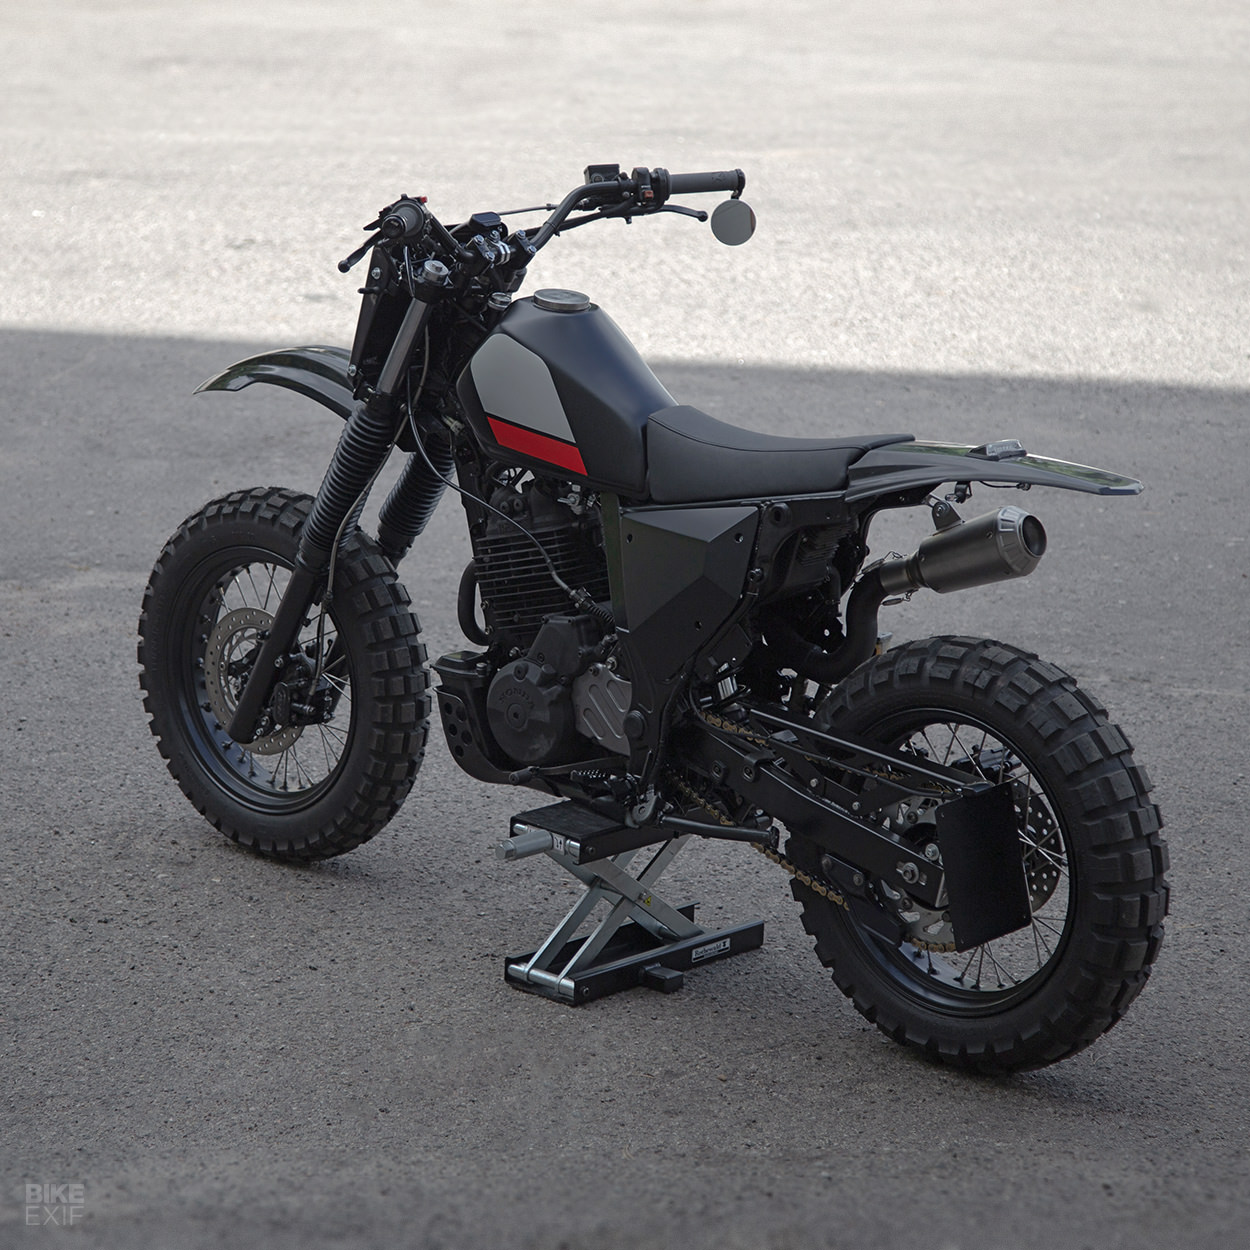 Honda NX650 Dominator by Differs of Lithuania